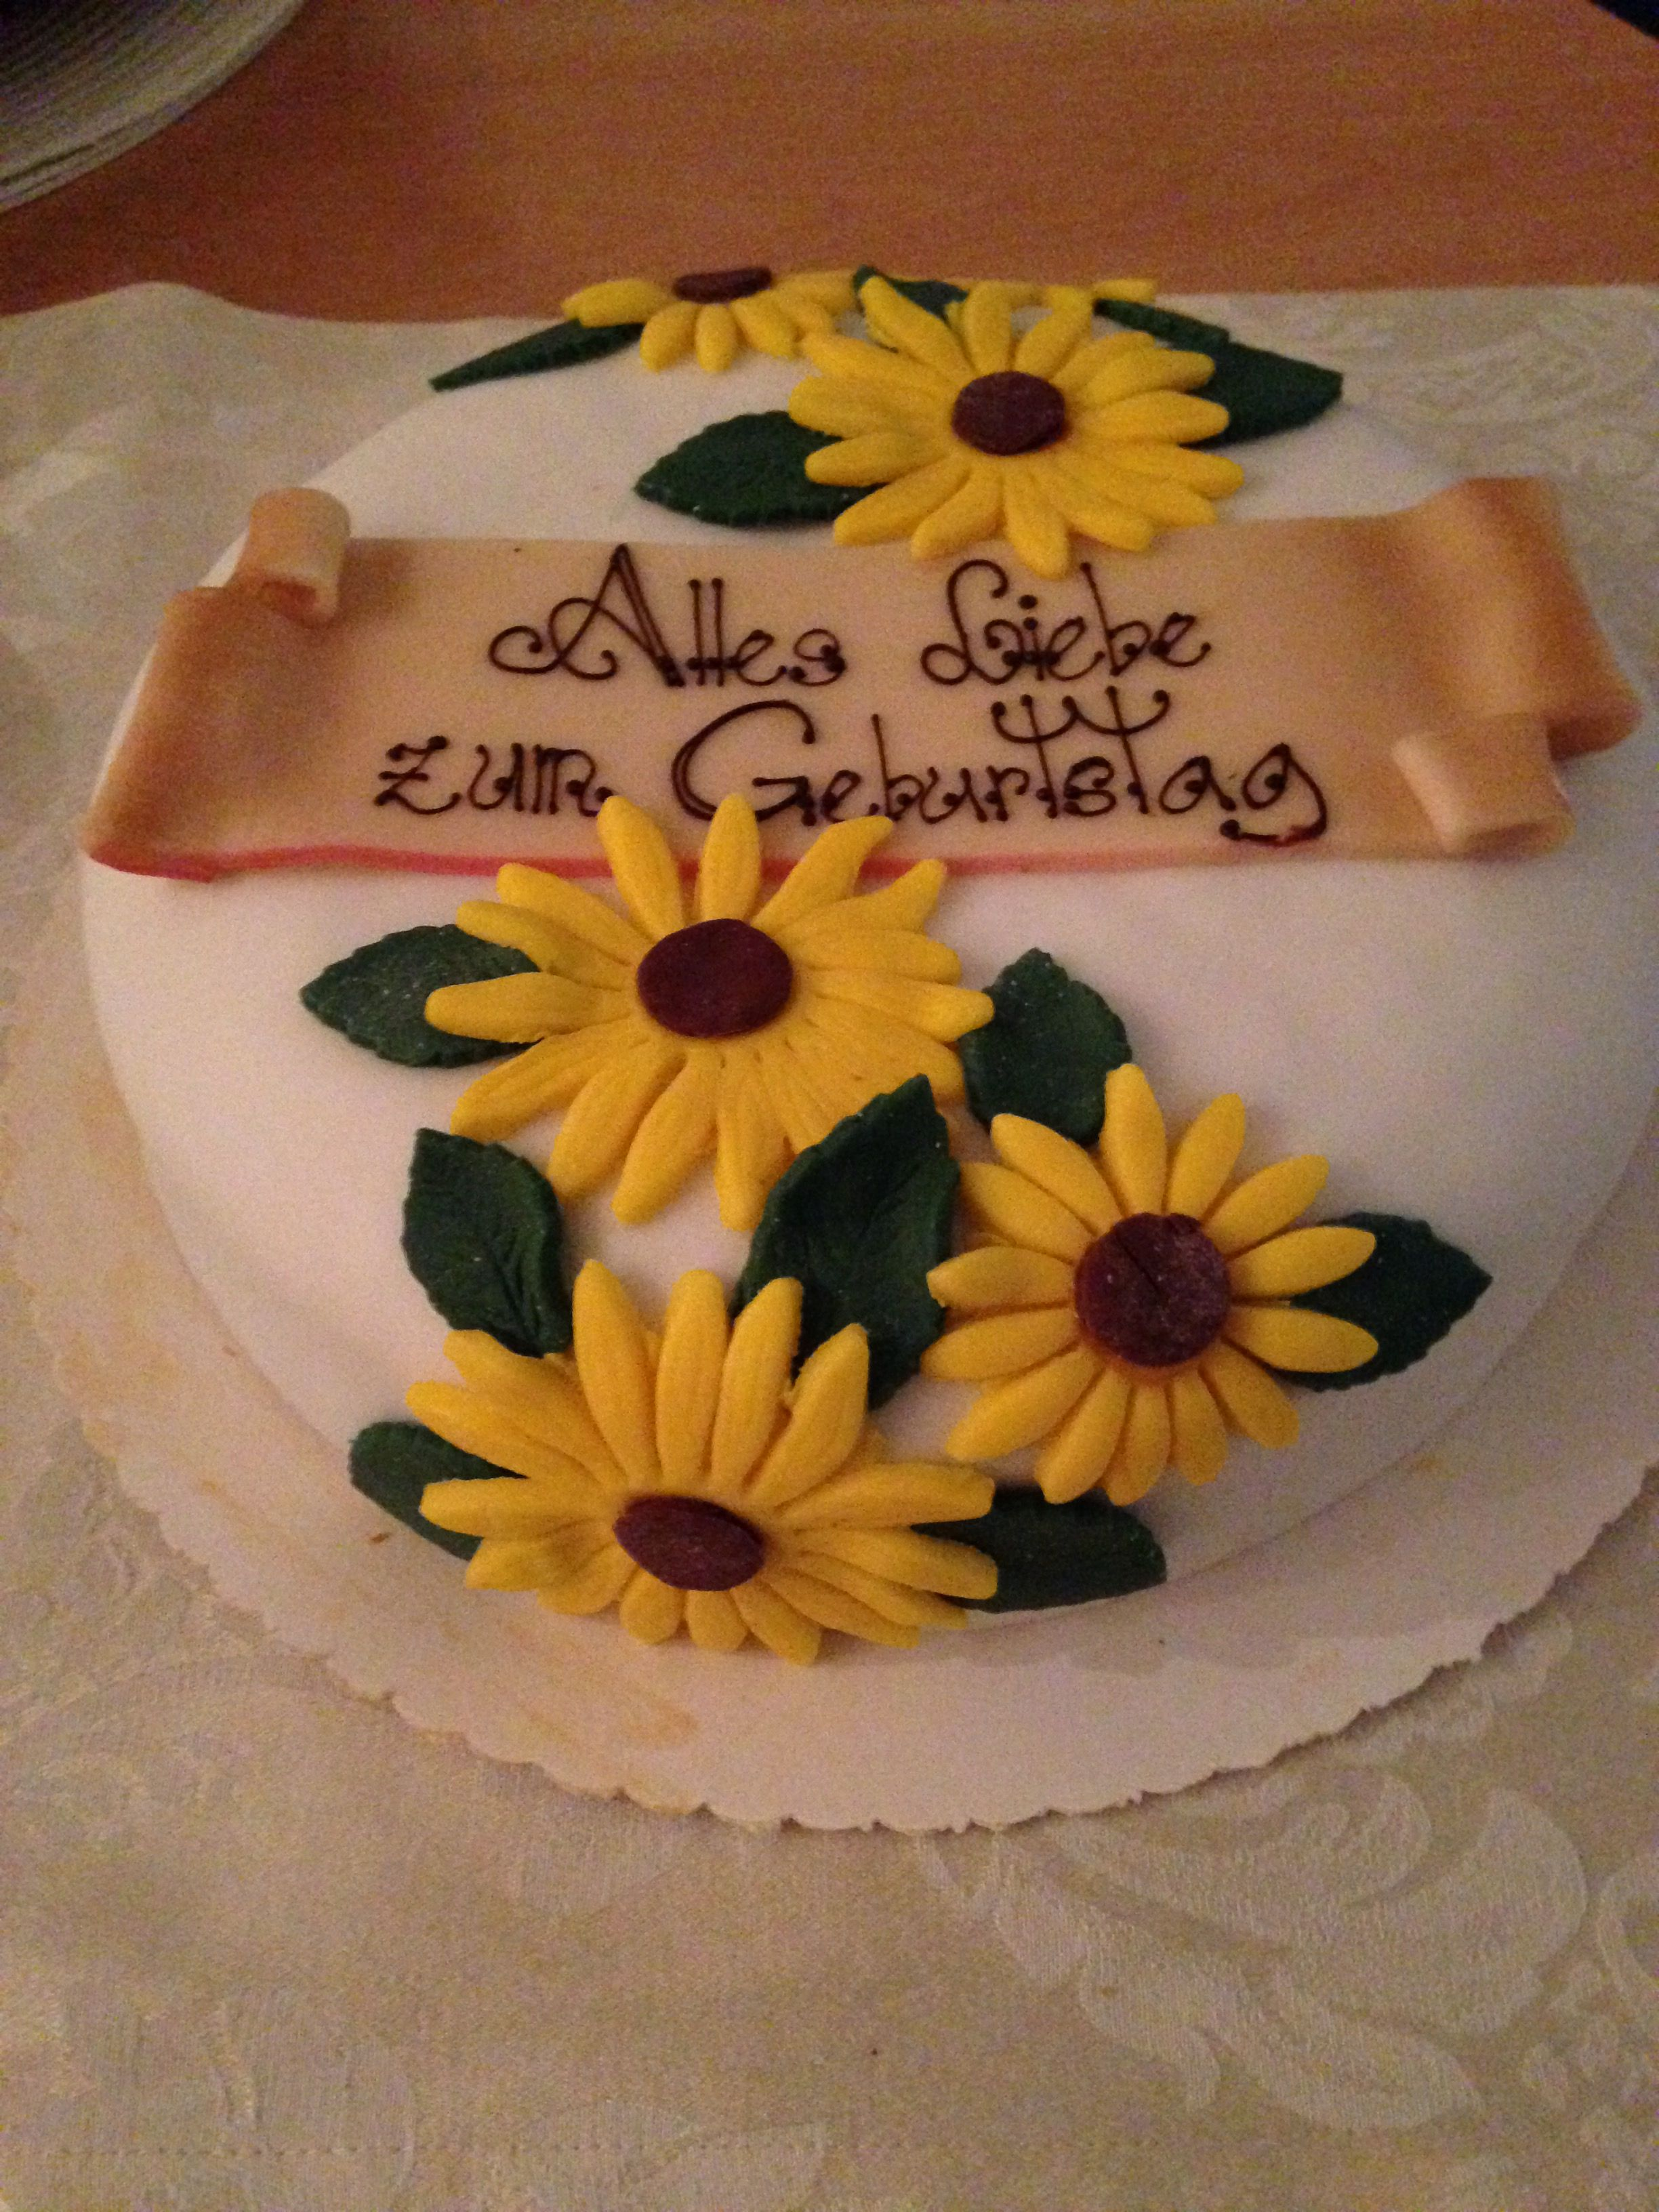 Birthday cake with sunflowers (With images) | Cake ...